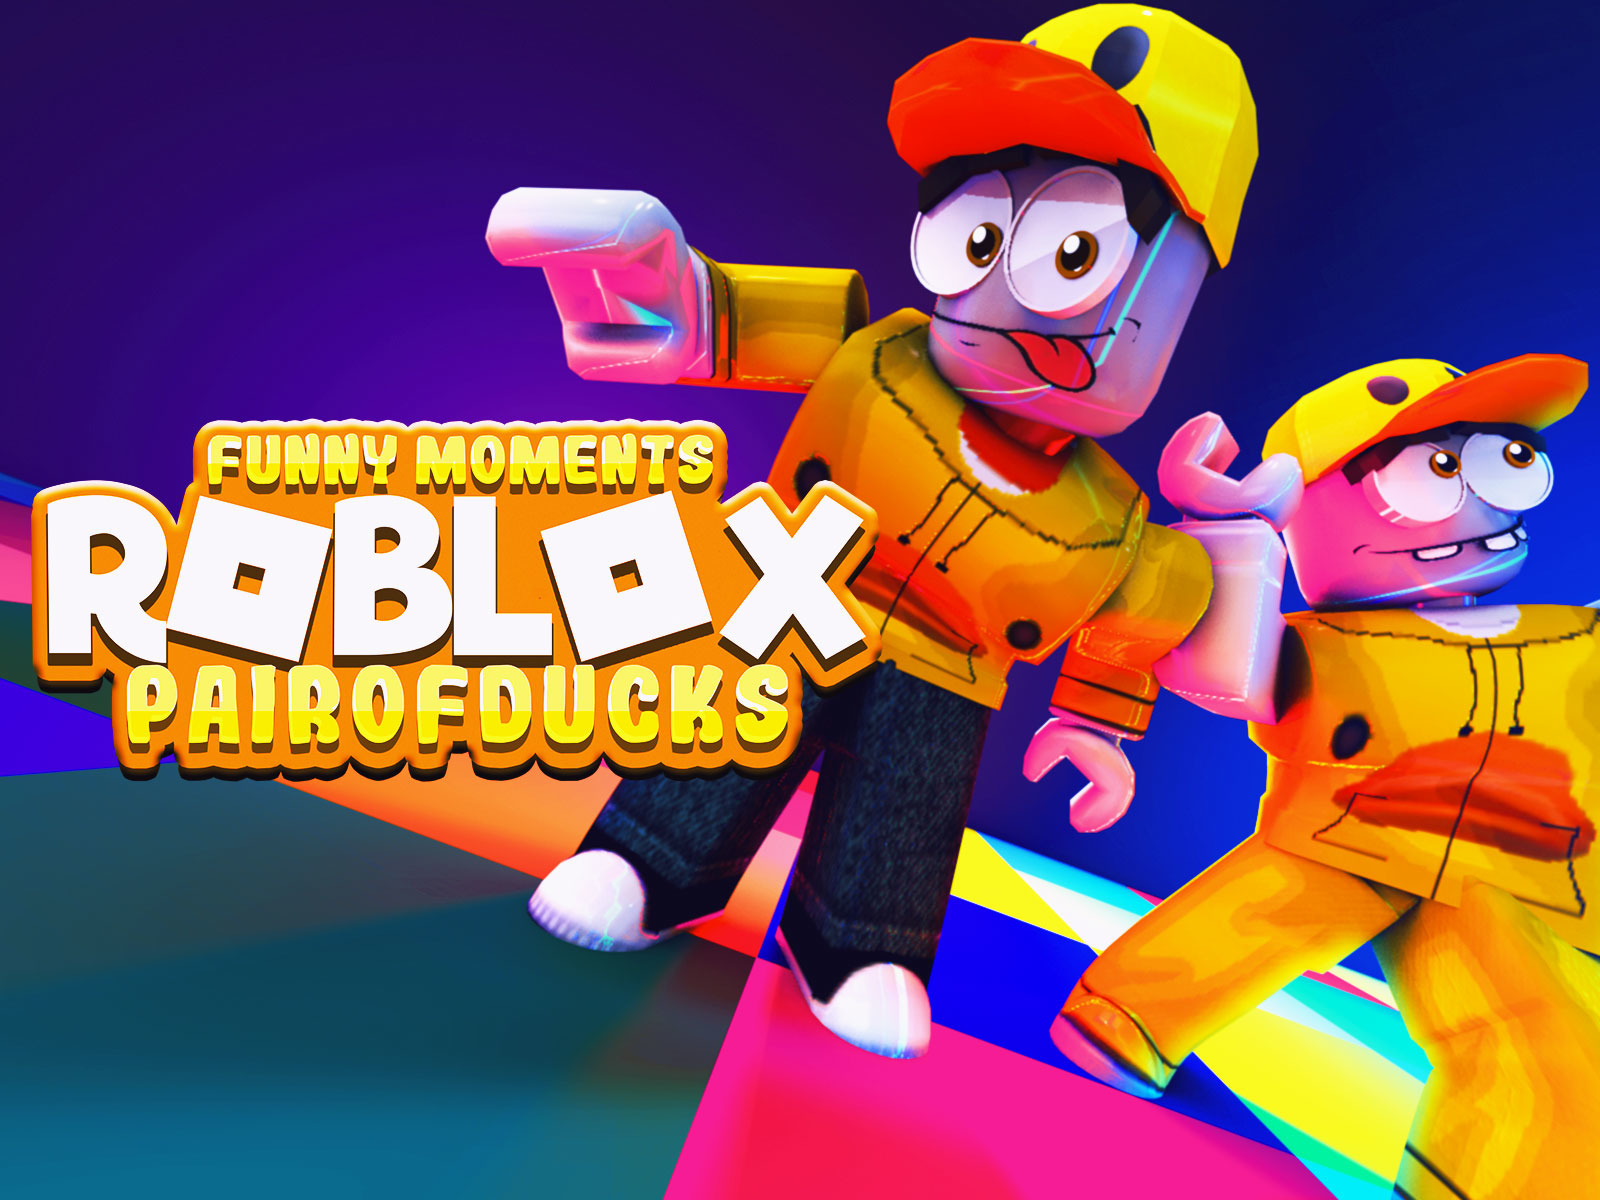 Watch Clip Roblox Funny Moments Pairofducks Mrquackerjack Prime Video Clip Roblox Funny Moments Pairofducks